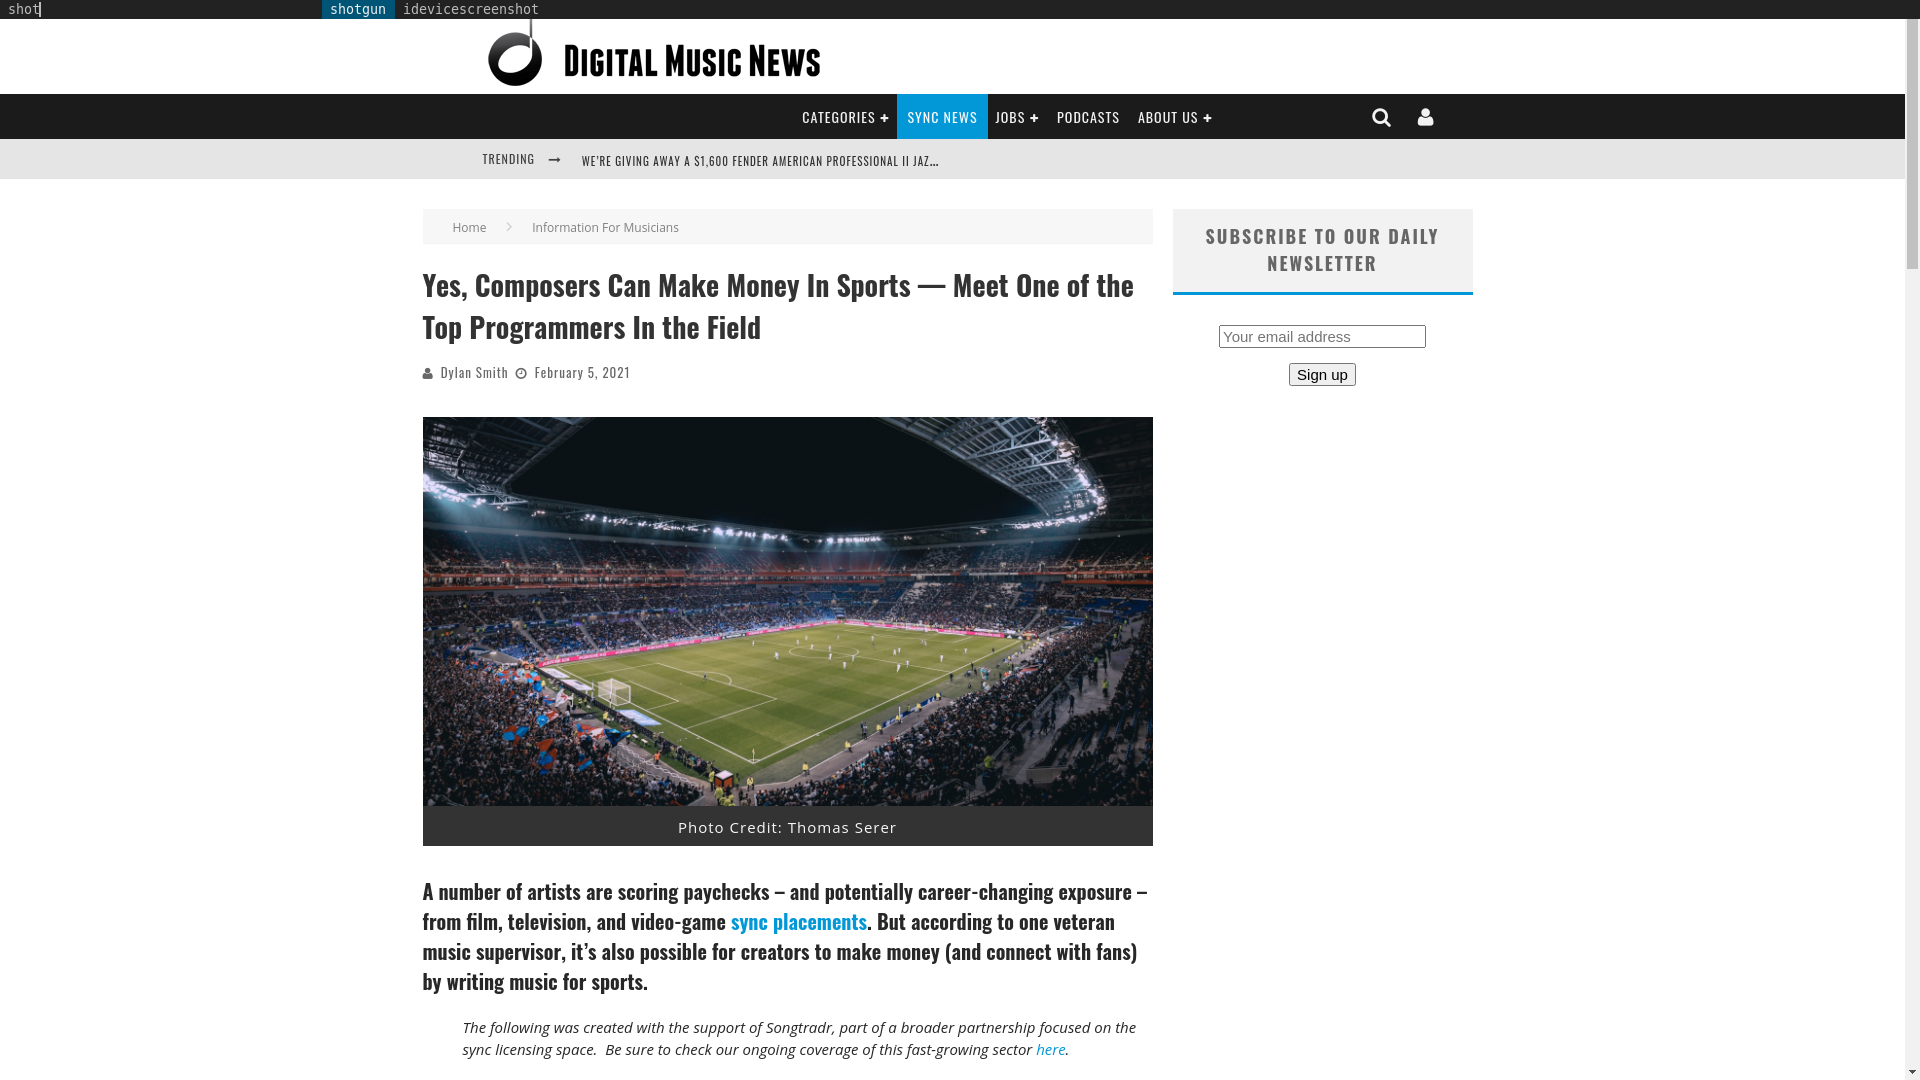 Fairness Rocks News Yes, Composers Can Make Money In Sports — Meet One of the Top Programmers In the Field